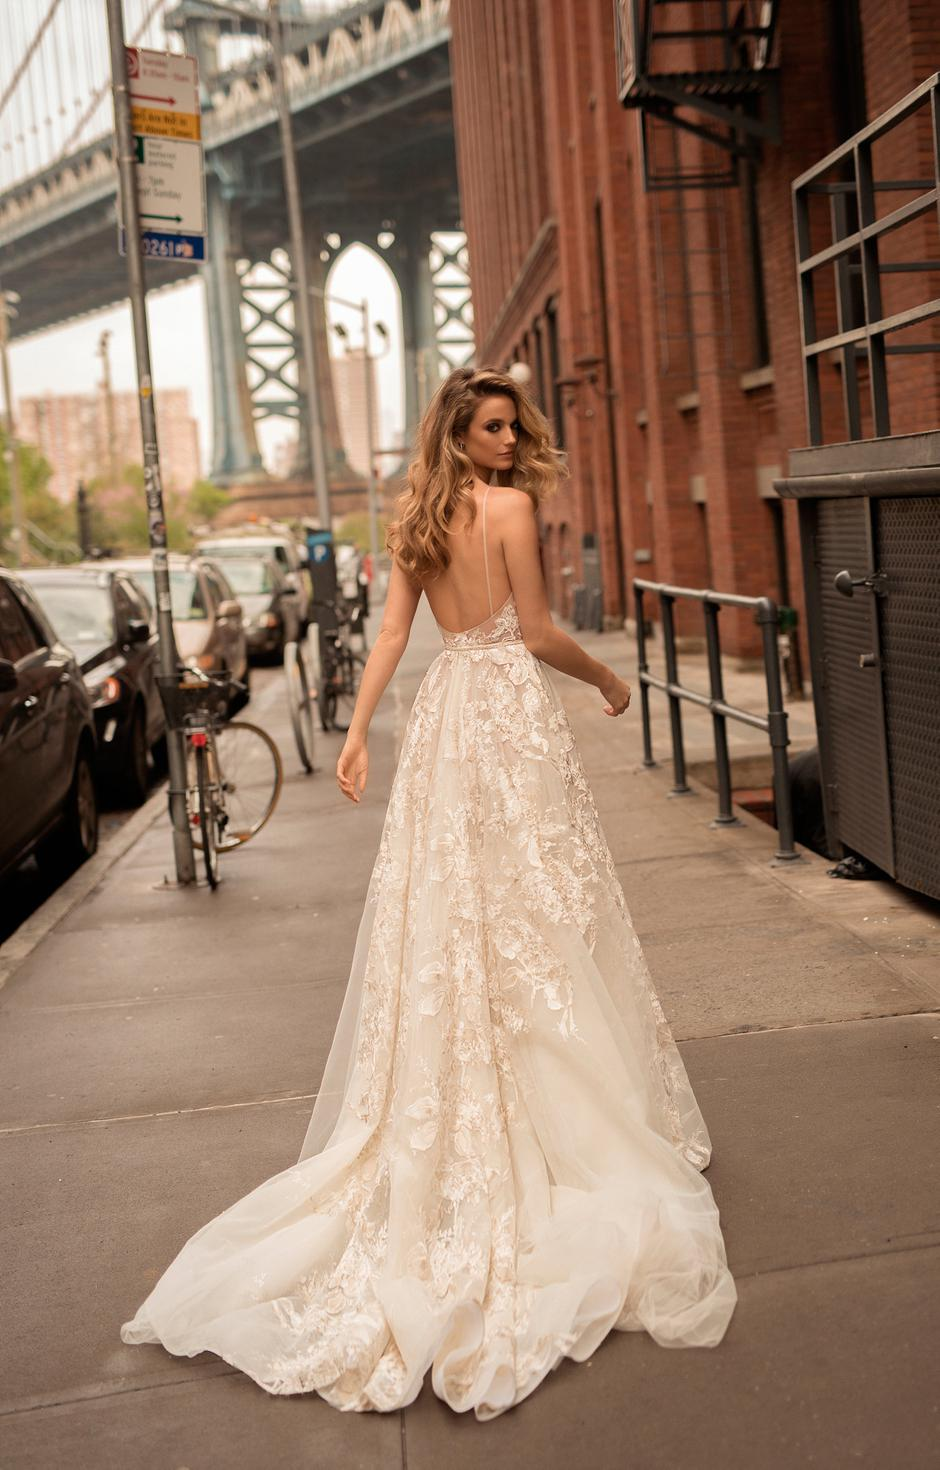 The latest daring bridal collection from Israeli designer BERTA will ...